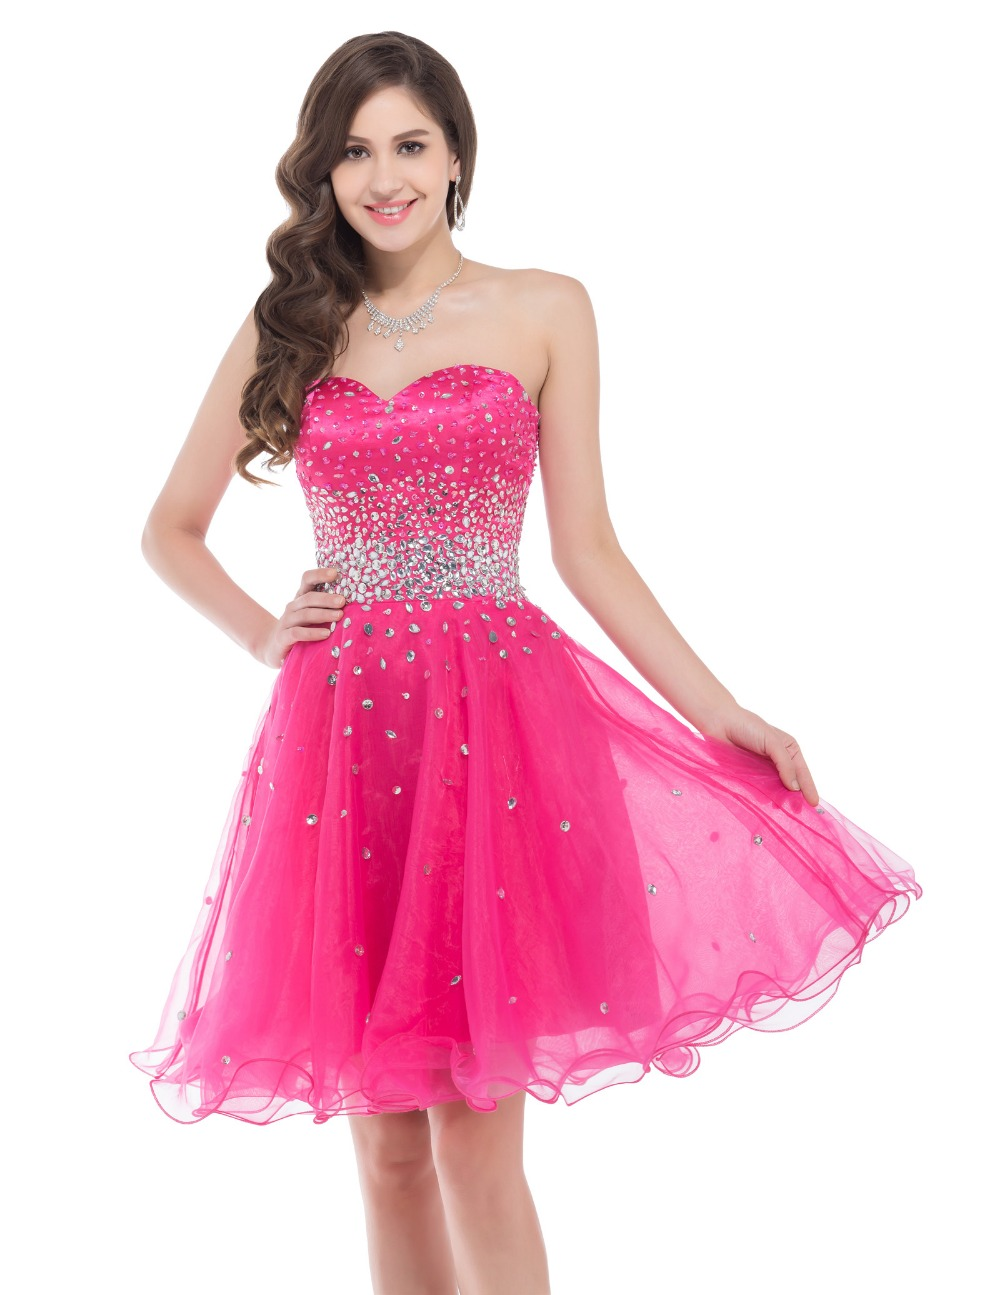 Where to buy prom dresses in stores